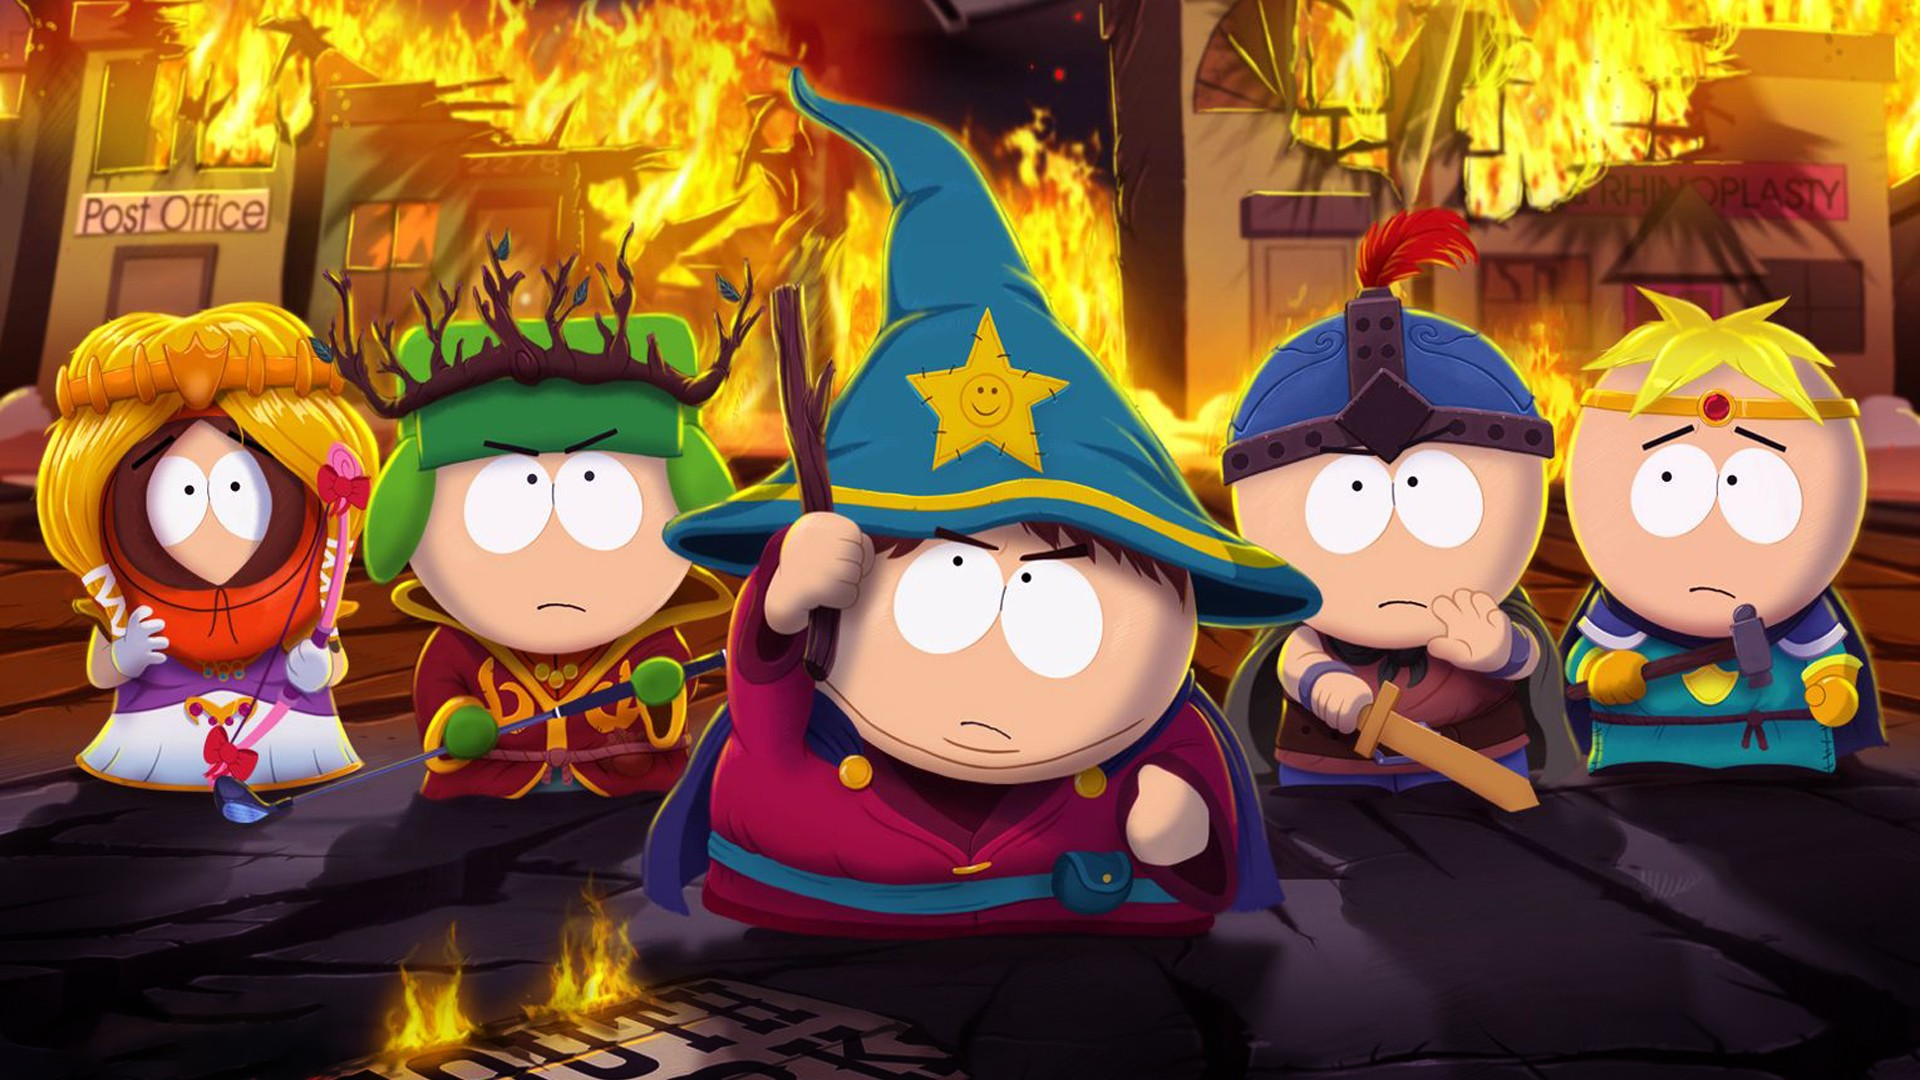 South-Park-The-Stick-of-Truth-review-GamesRadar-wallpaper-wpc5808886